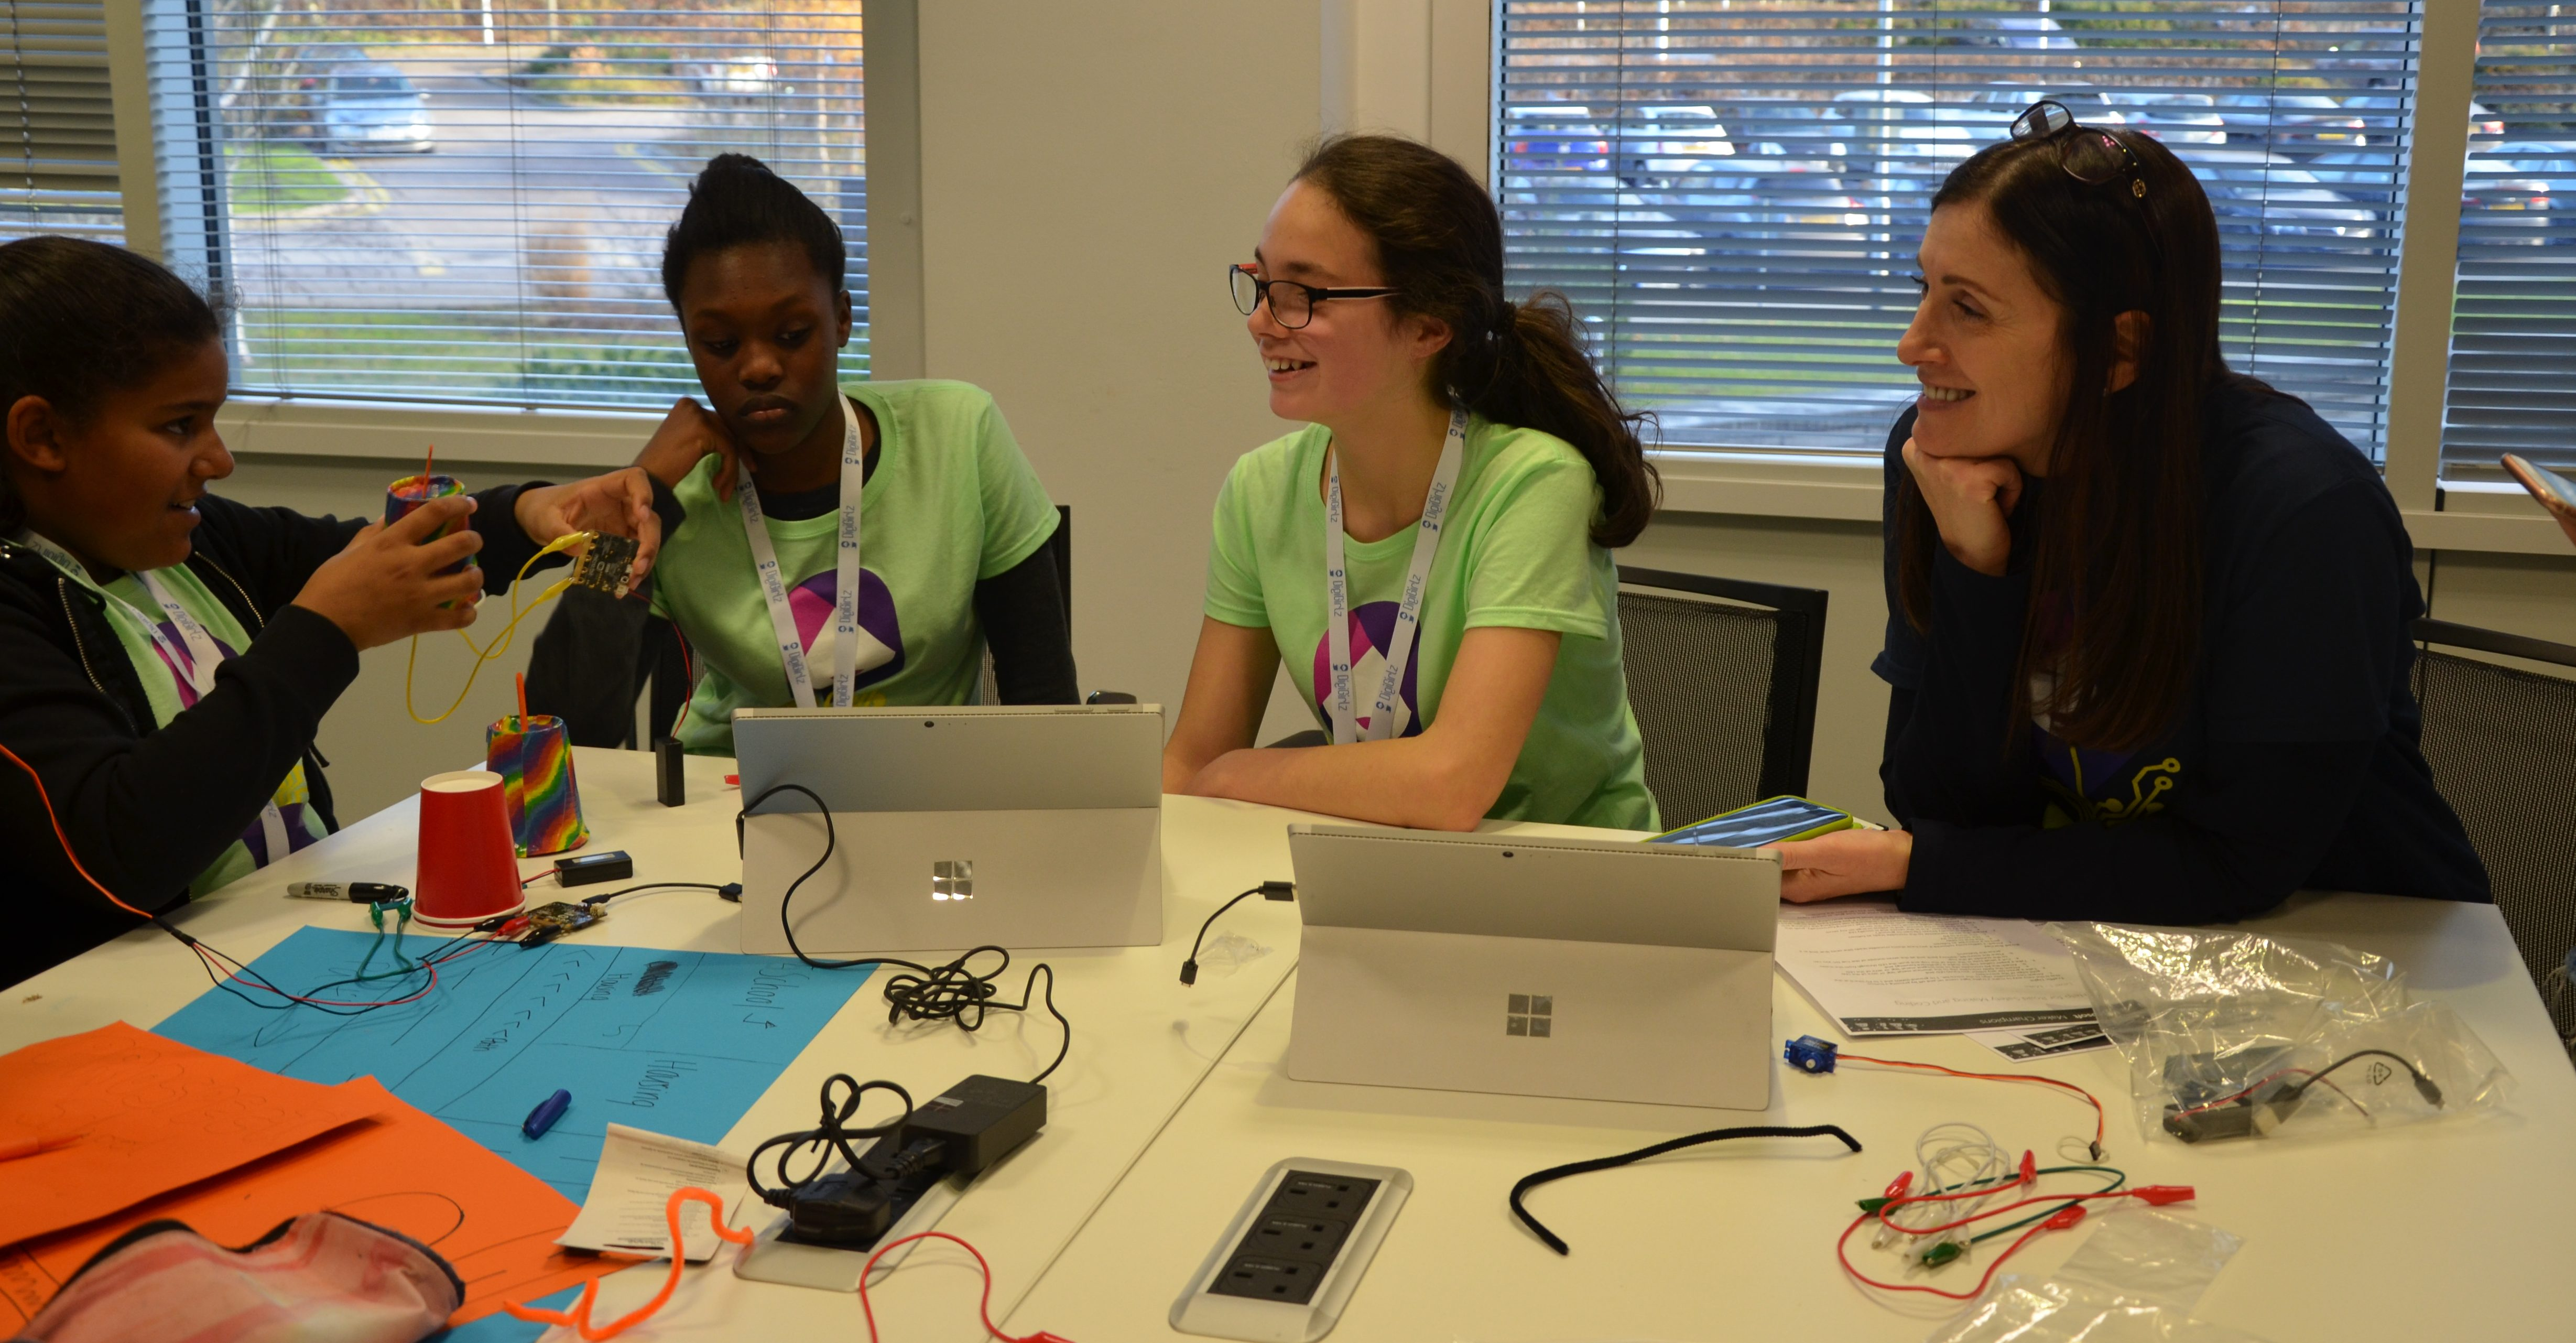 Cindy Rose, UK CEO, talking to schoolgirls at the DigiGirlz event